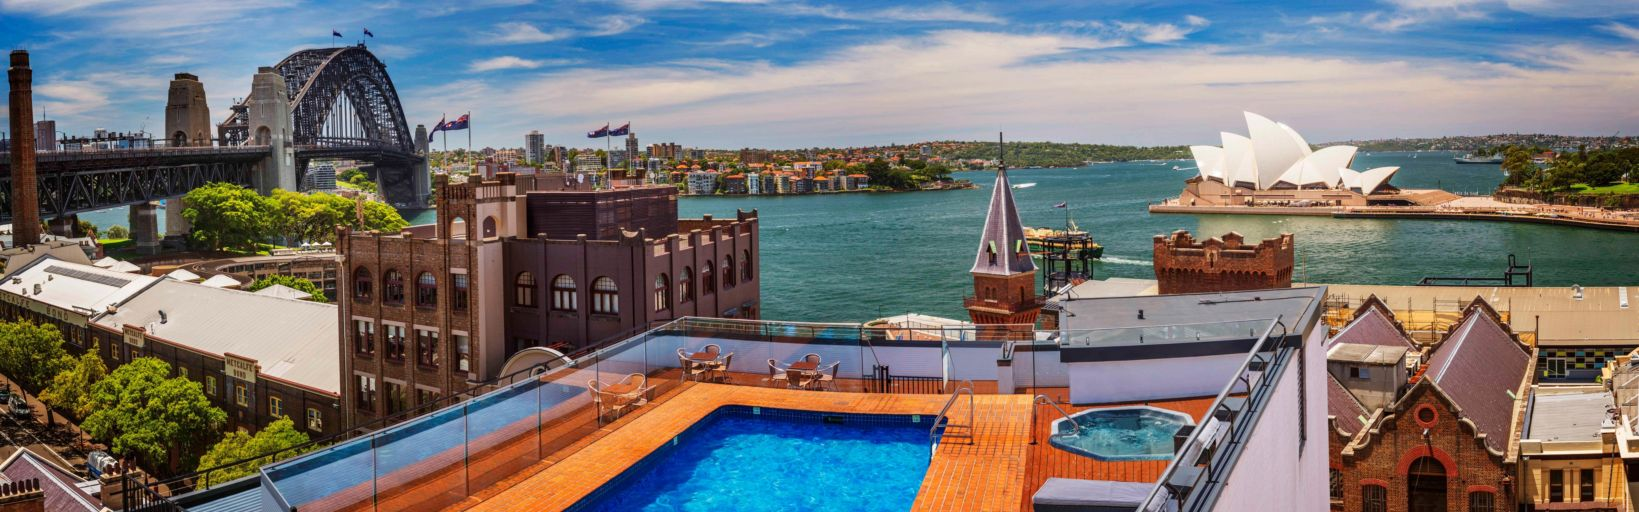 Holiday Inn Old Sydney Rooftop View